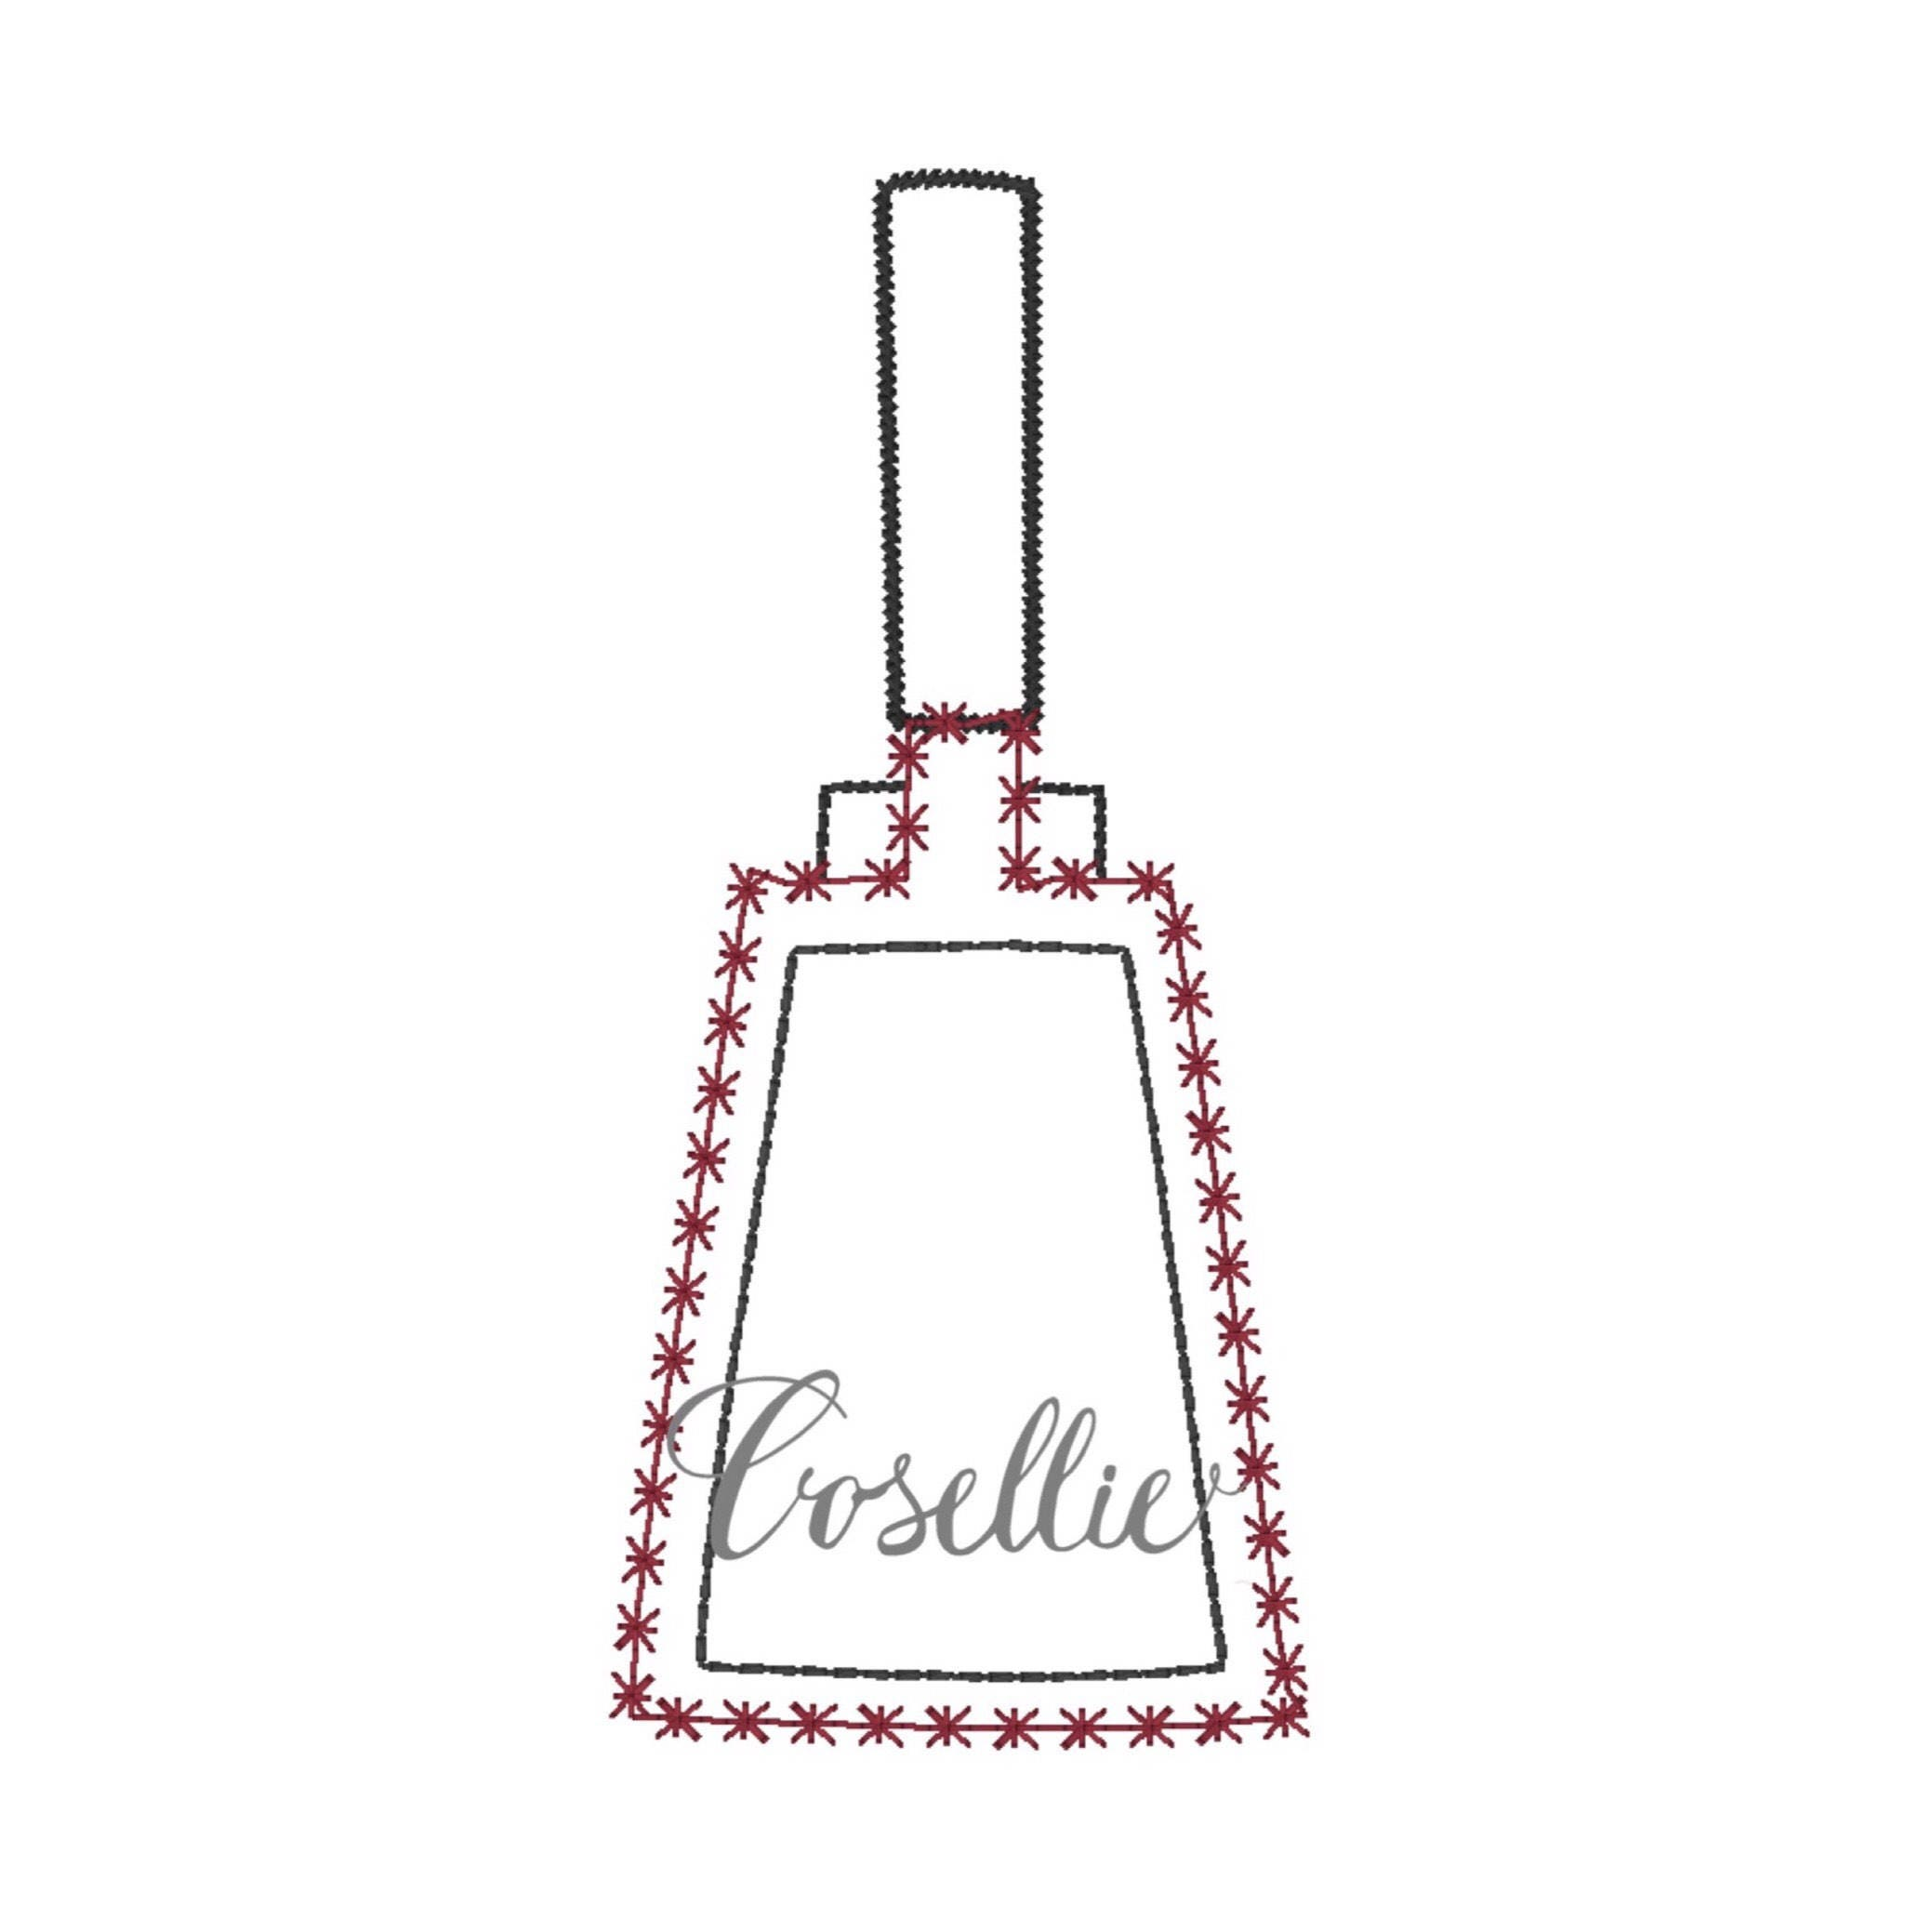 cowbell embroidery design cowbell outline embroidery design